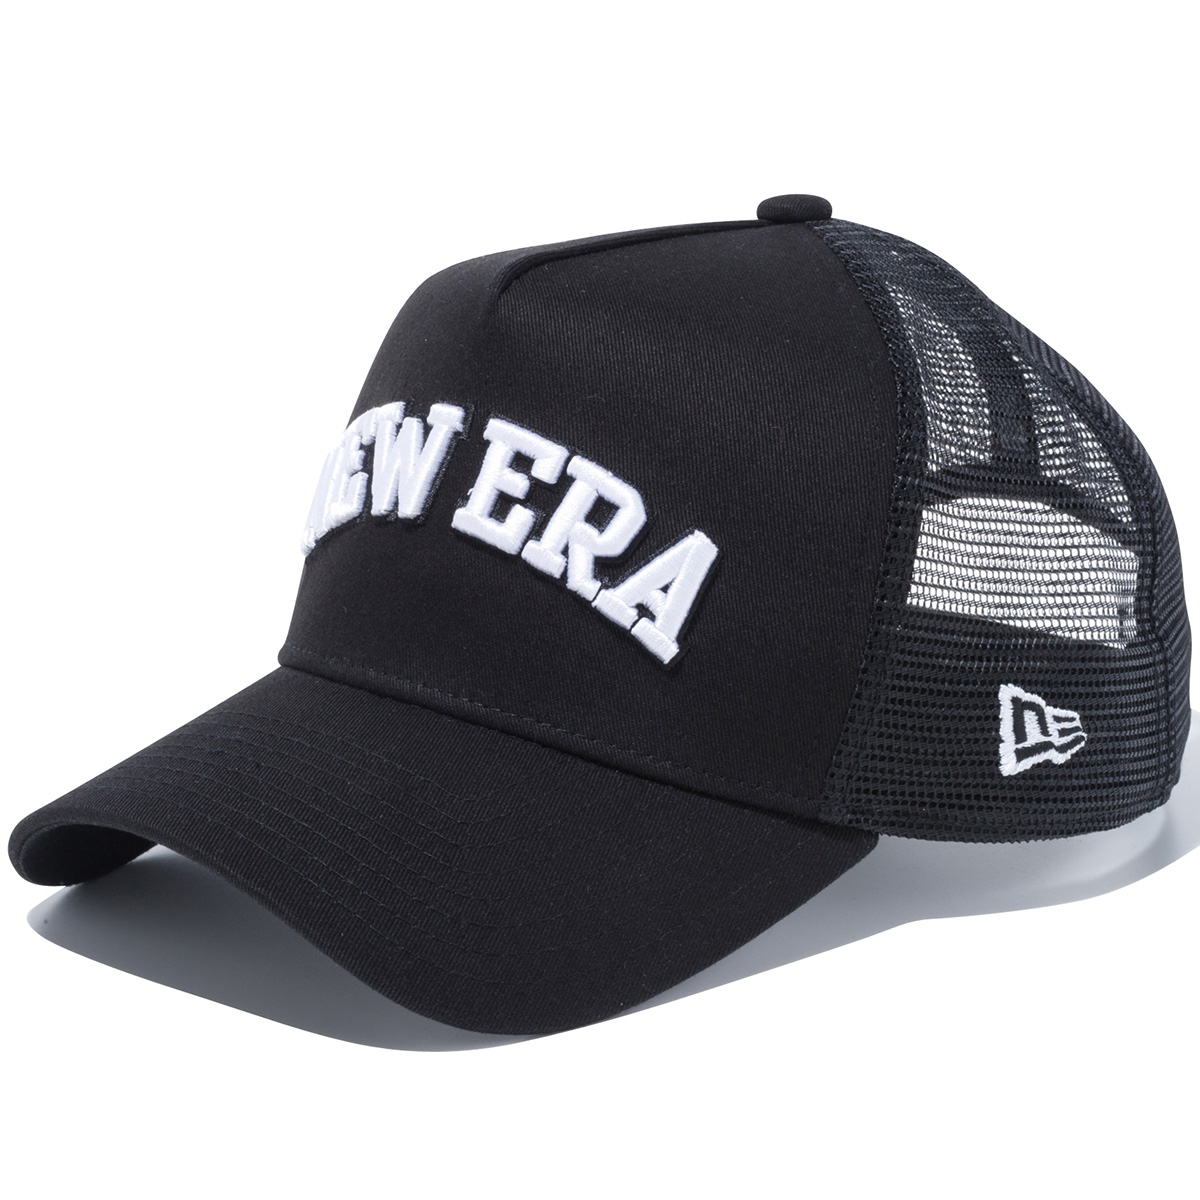 GOLF 940 AF TR NEW ERA ARCH キャップ